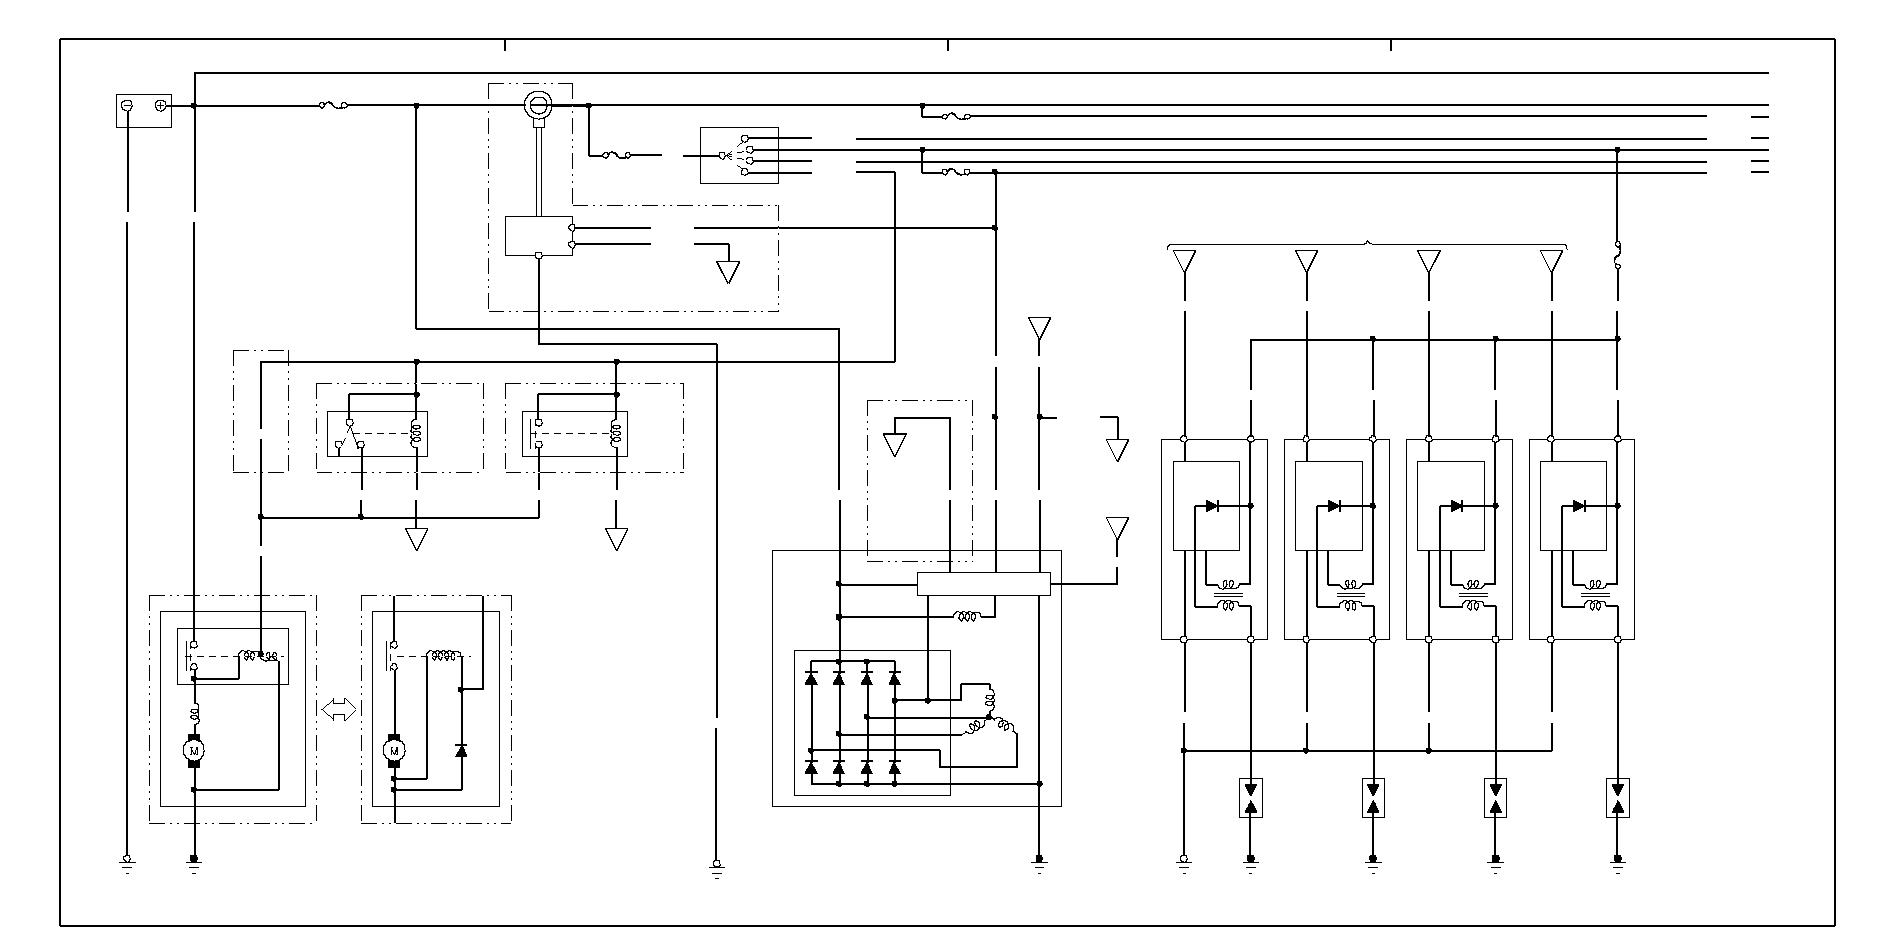 Subaru Radio Wiring Diagram from i2.wp.com